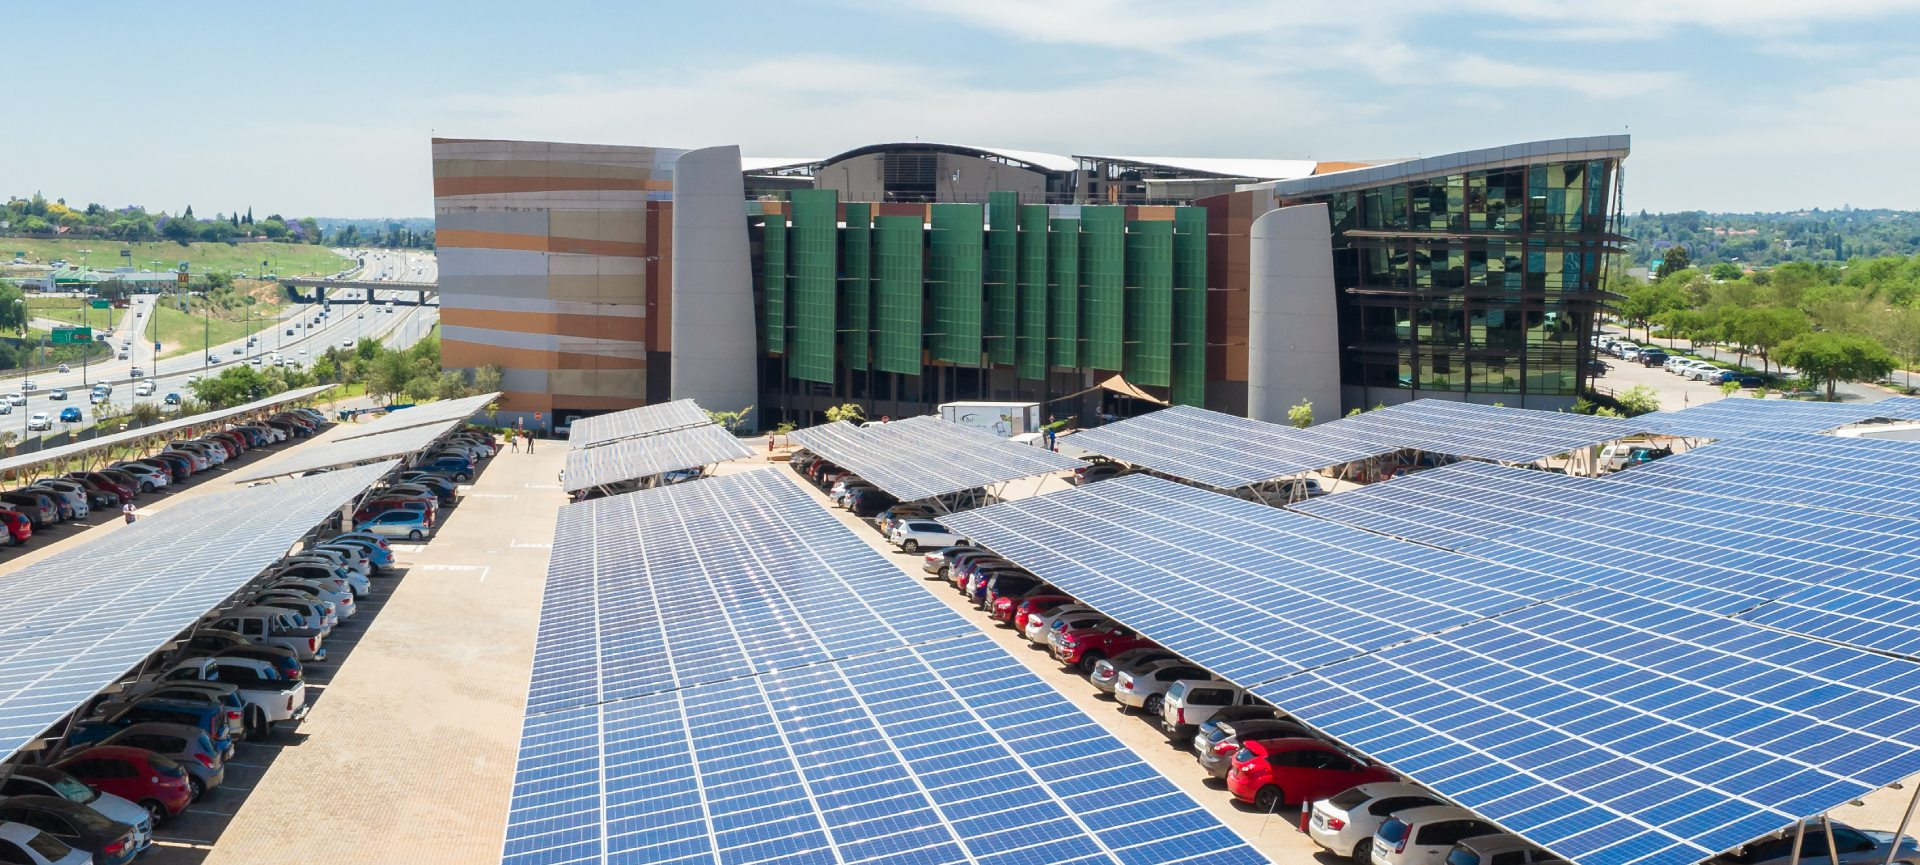 Sunworx proudly completed one of the largest solar carports in the Southern hemisphere.